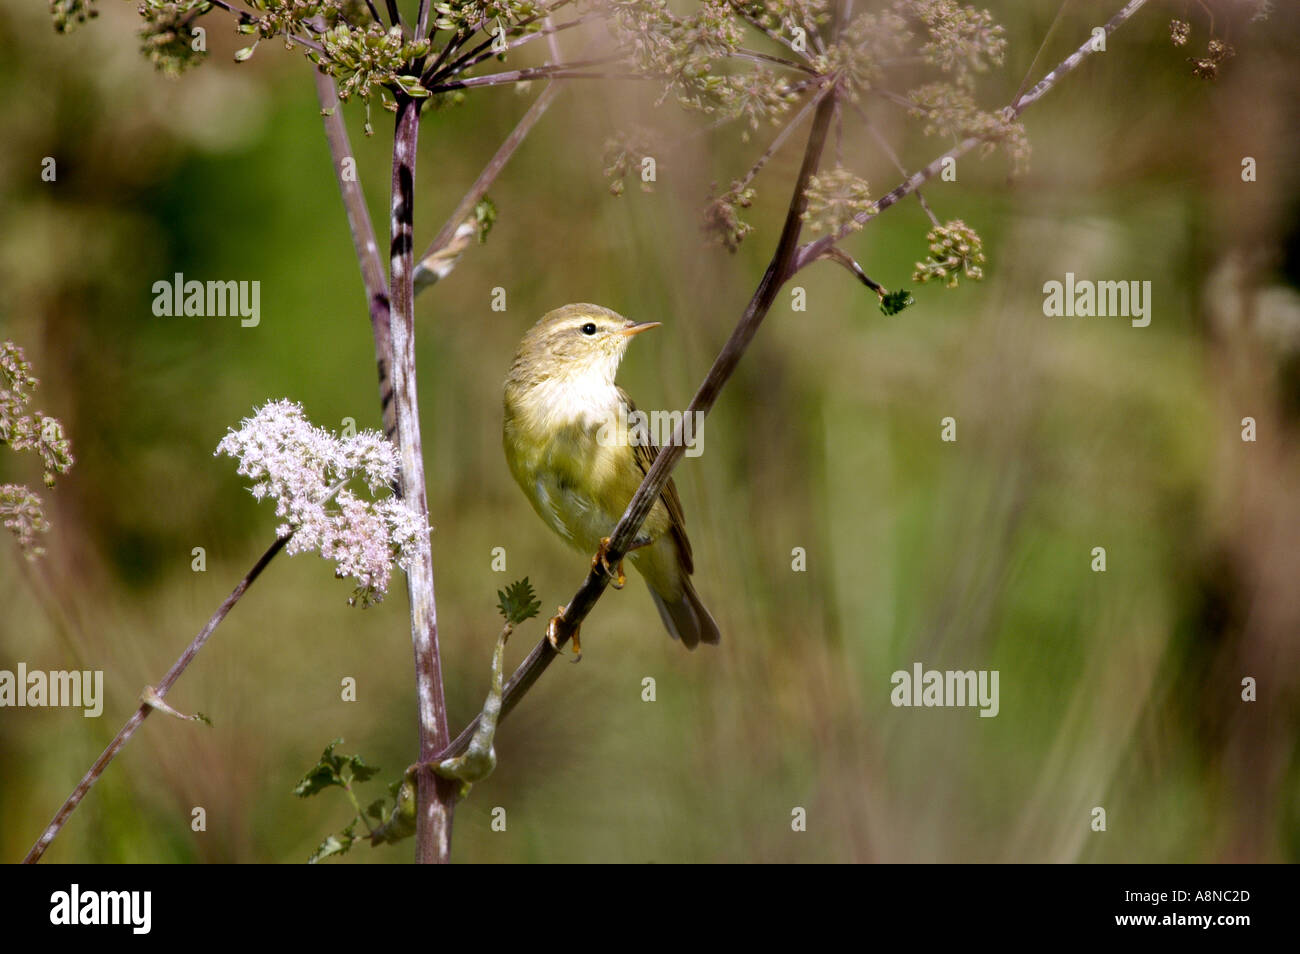 Willow Warbler Tittesworth Resevoir England - Stock Image